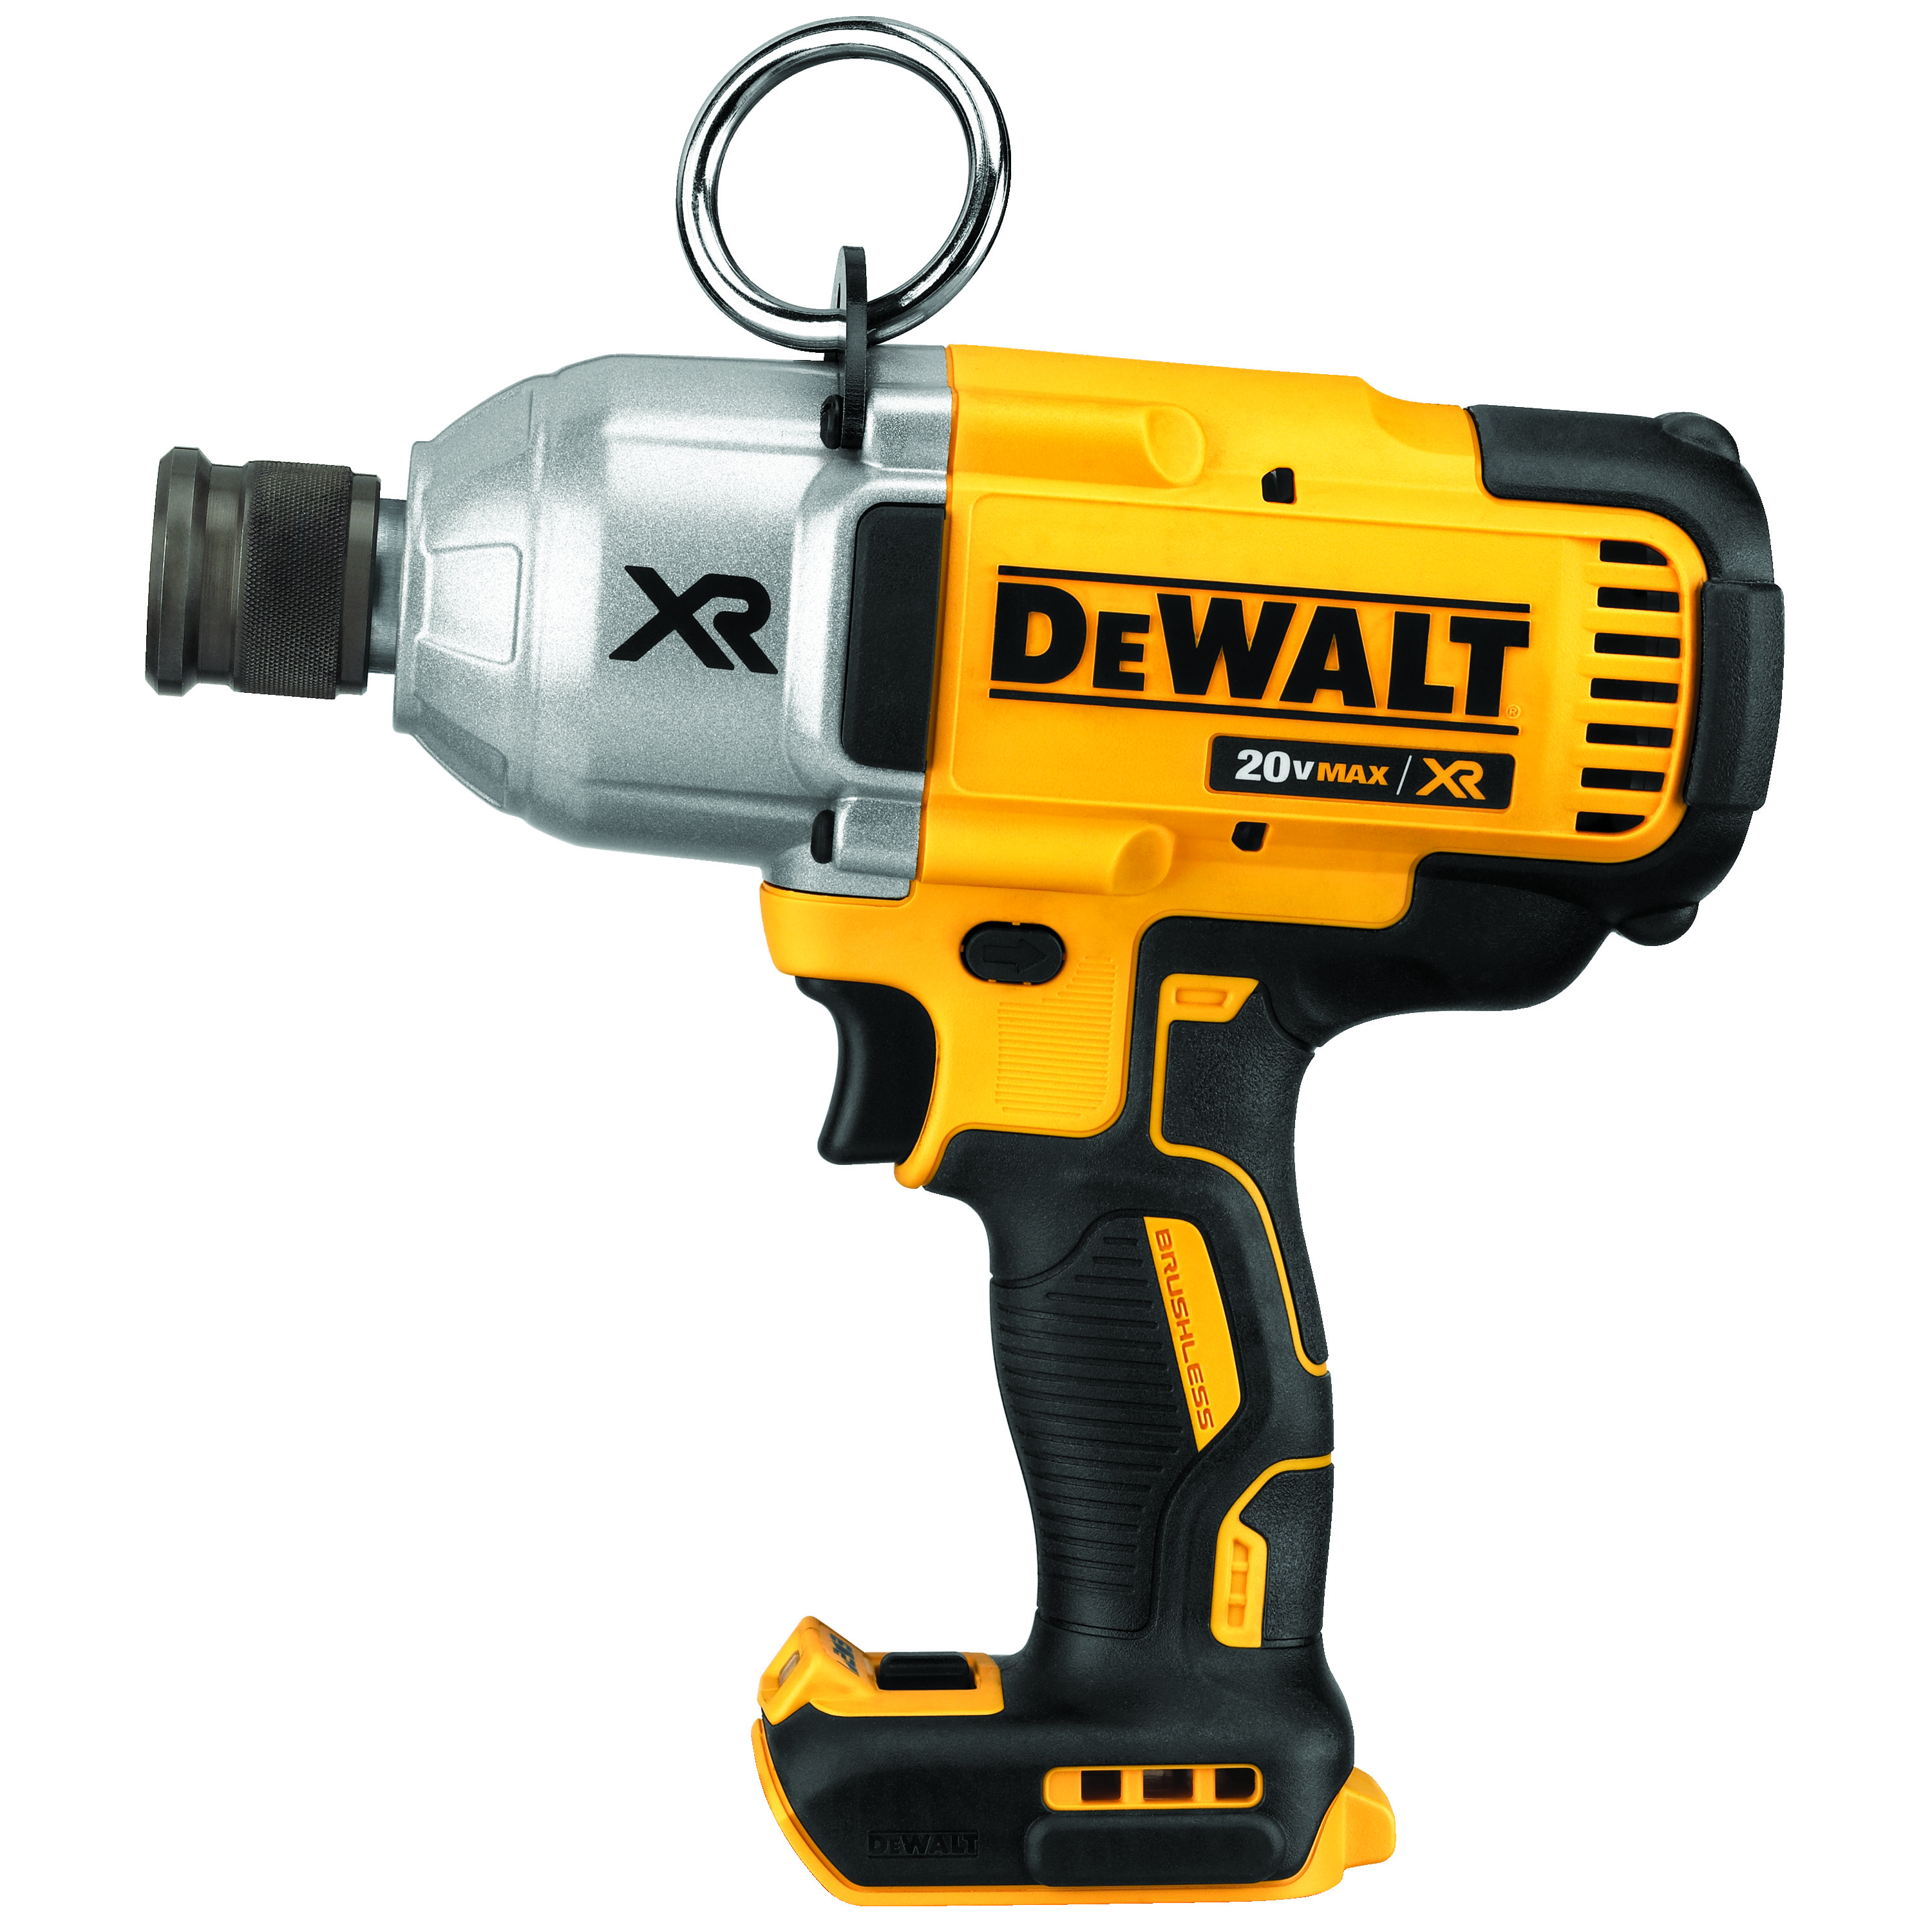 DeWALT® 20V MAX* MATRIX™ XR™ DCF898B Brushless High Torque Cordless Impact Wrench, 7/16 in Straight Drive, 500 ft-lb Torque, 20 VDC, 8.81 in OAL, Tool Only